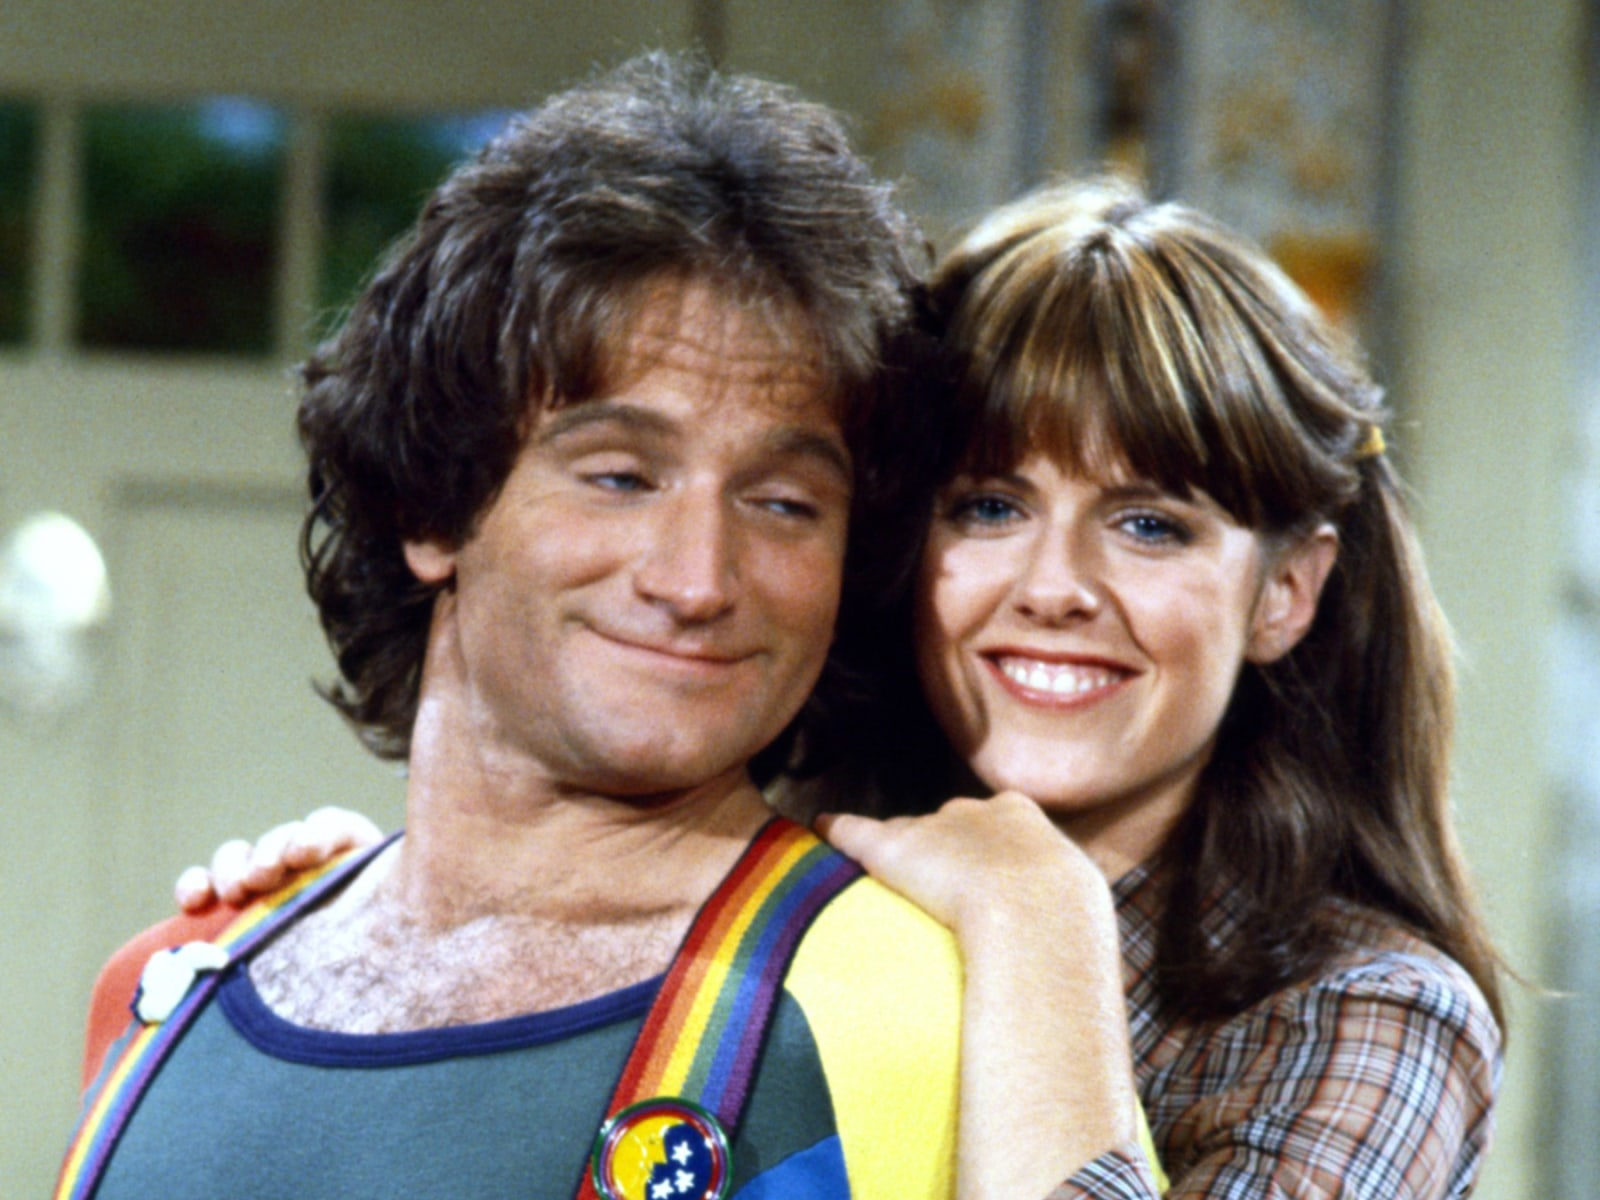 MORK & MINDY, Robin Williams, Pam Dawber, 1978-82, © Paramount Television / Courtesy: Everett Collec